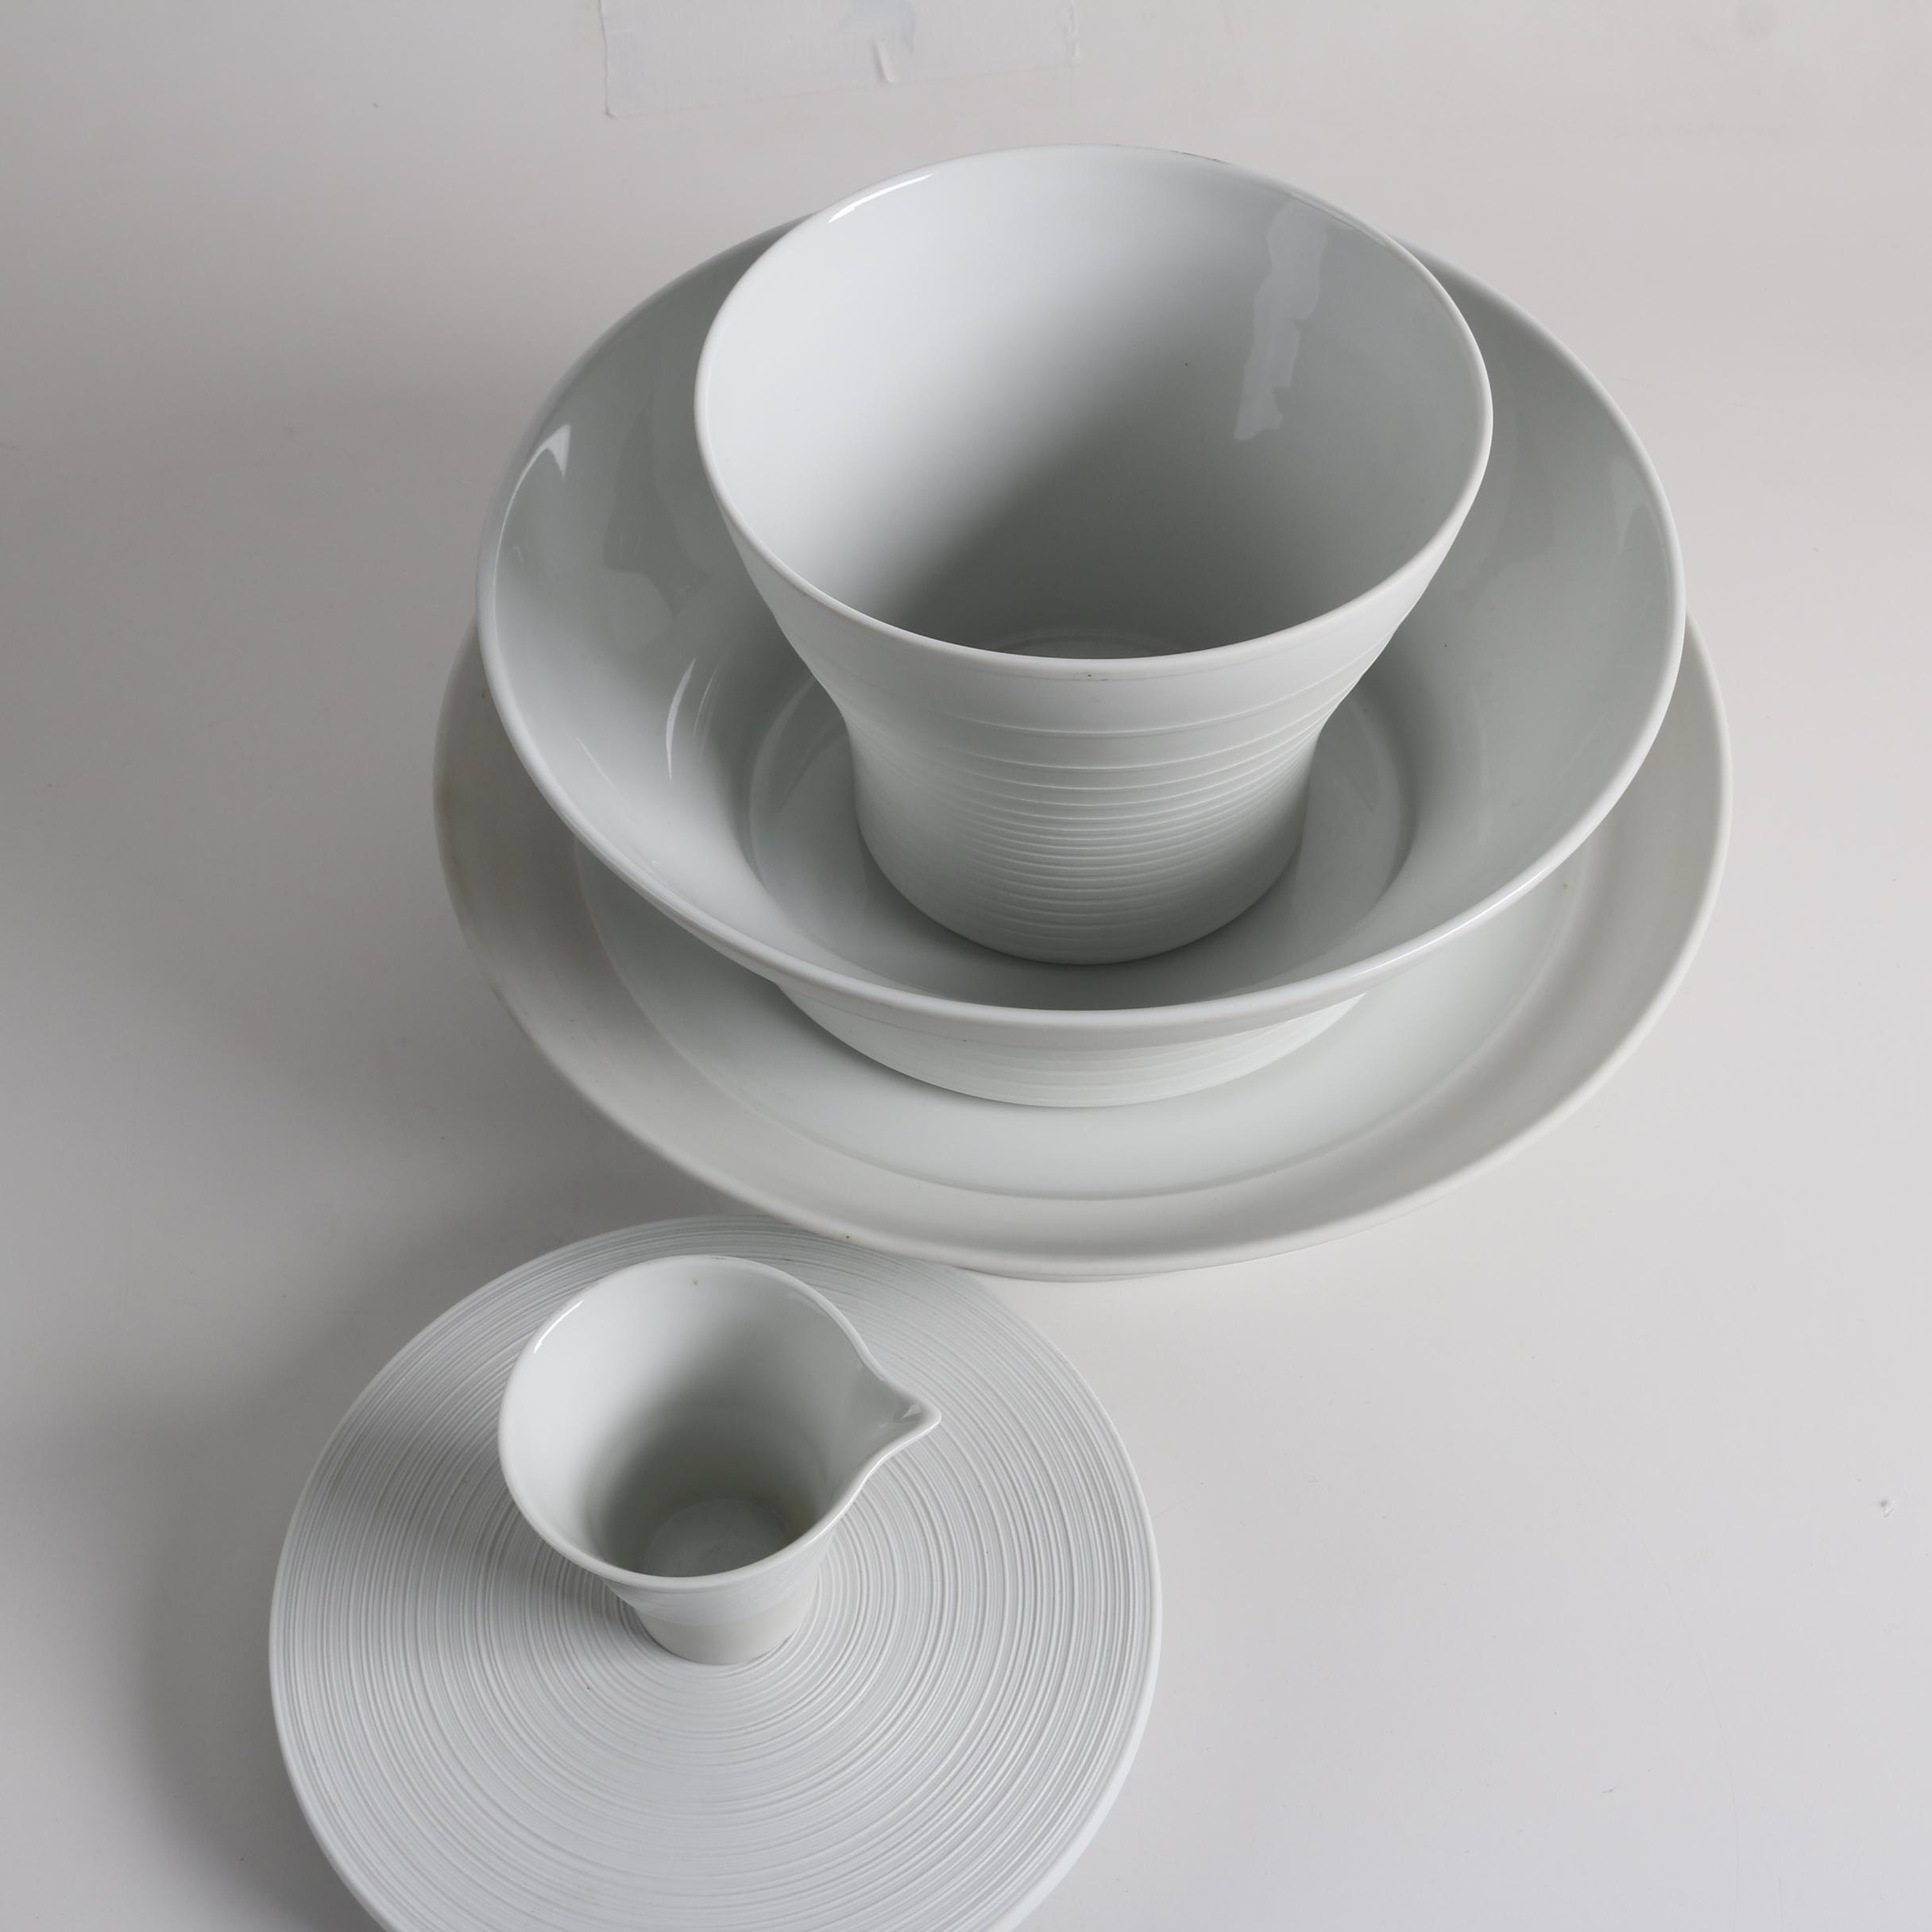 Contemporary Hering Berlin Bisque Porcelain with J.L. Coquet Limoges Ceramics